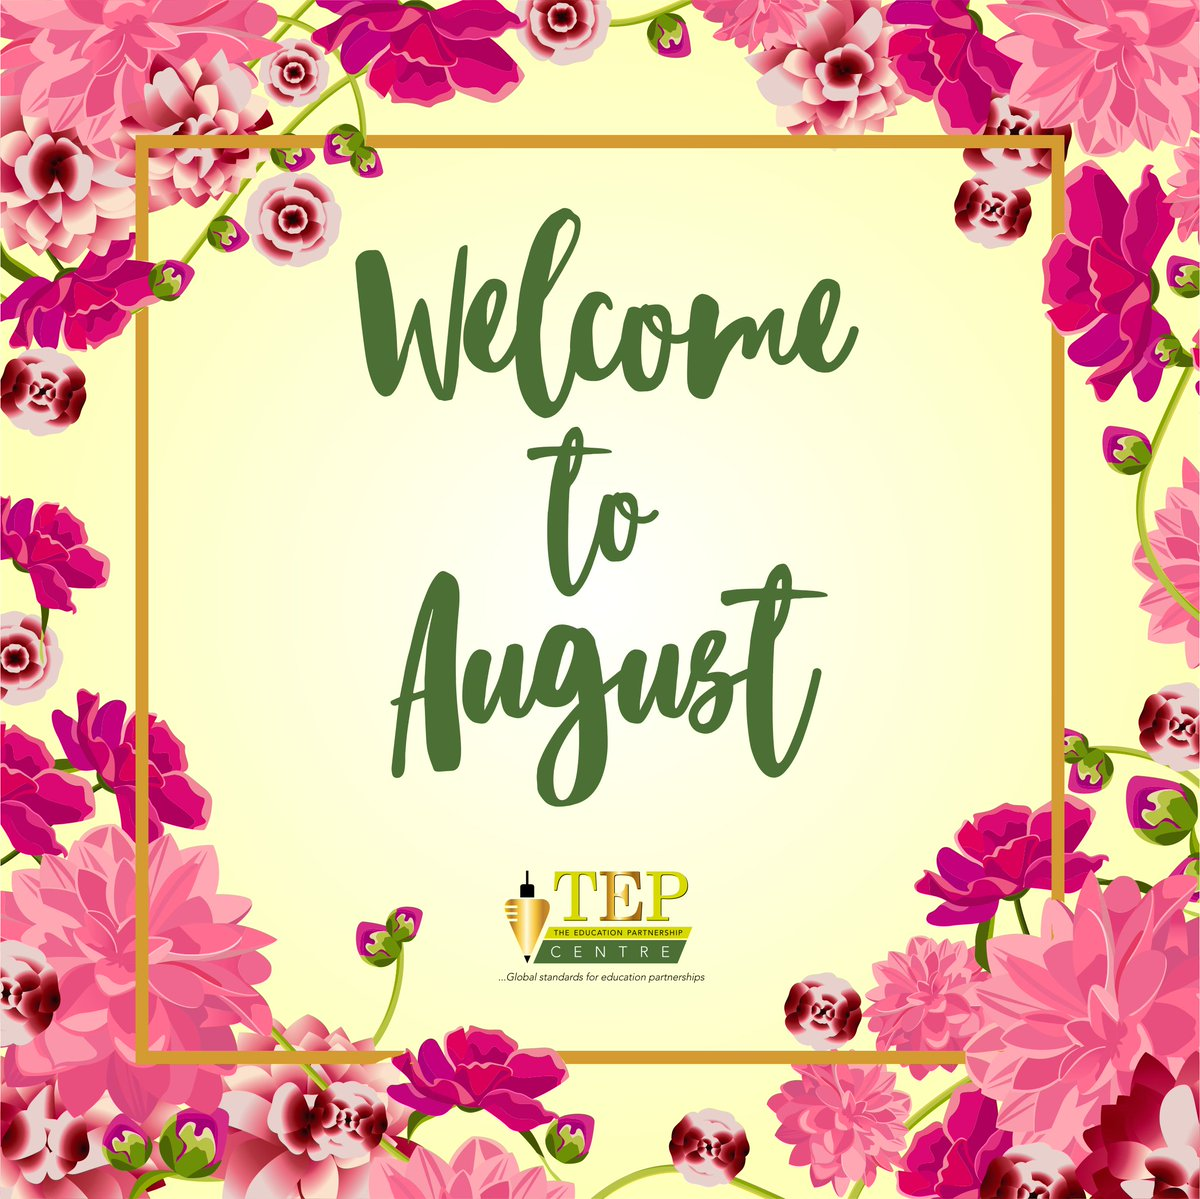 Tep centre on twitter happy new month welcome to the month of tep centre on twitter happy new month welcome to the month of august happynewmonth newmonth august education learning tepcentre m4hsunfo